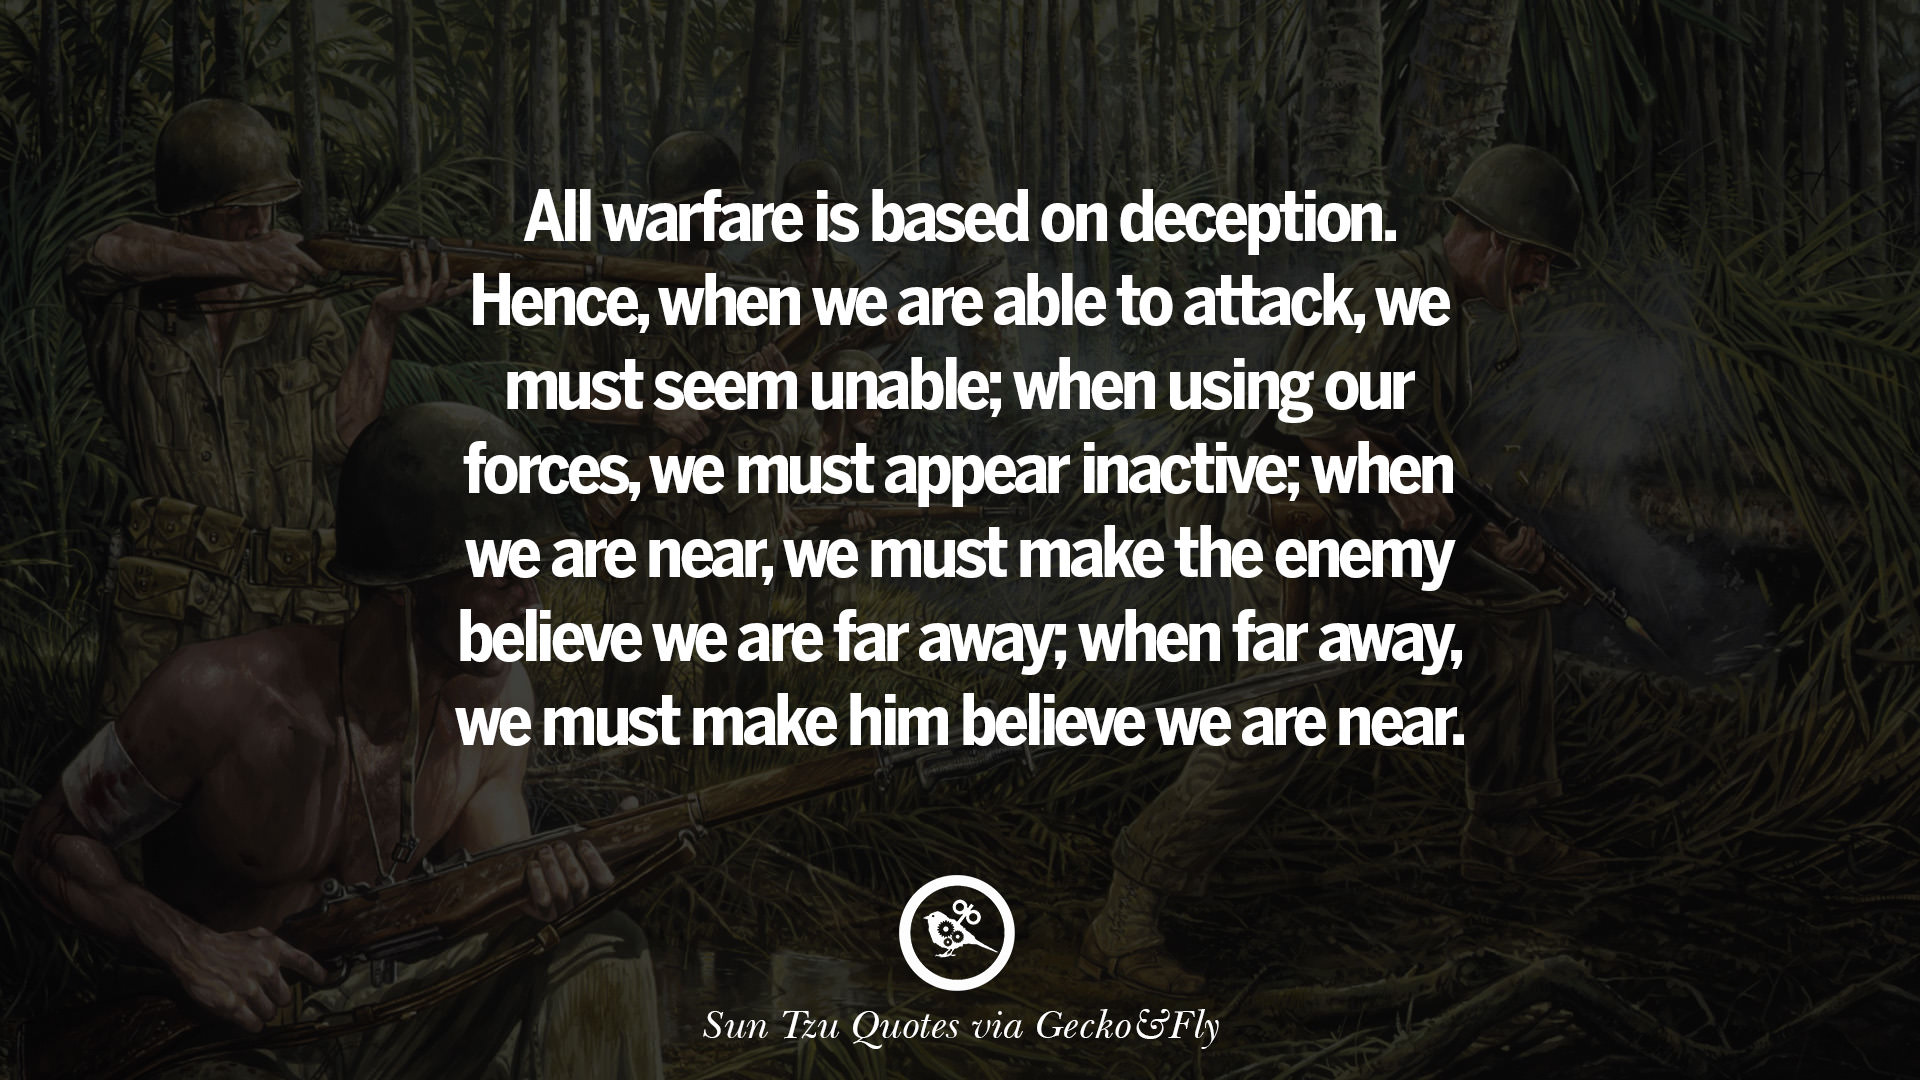 18 Quotes From Sun Tzu Art Of War For Politics, Business